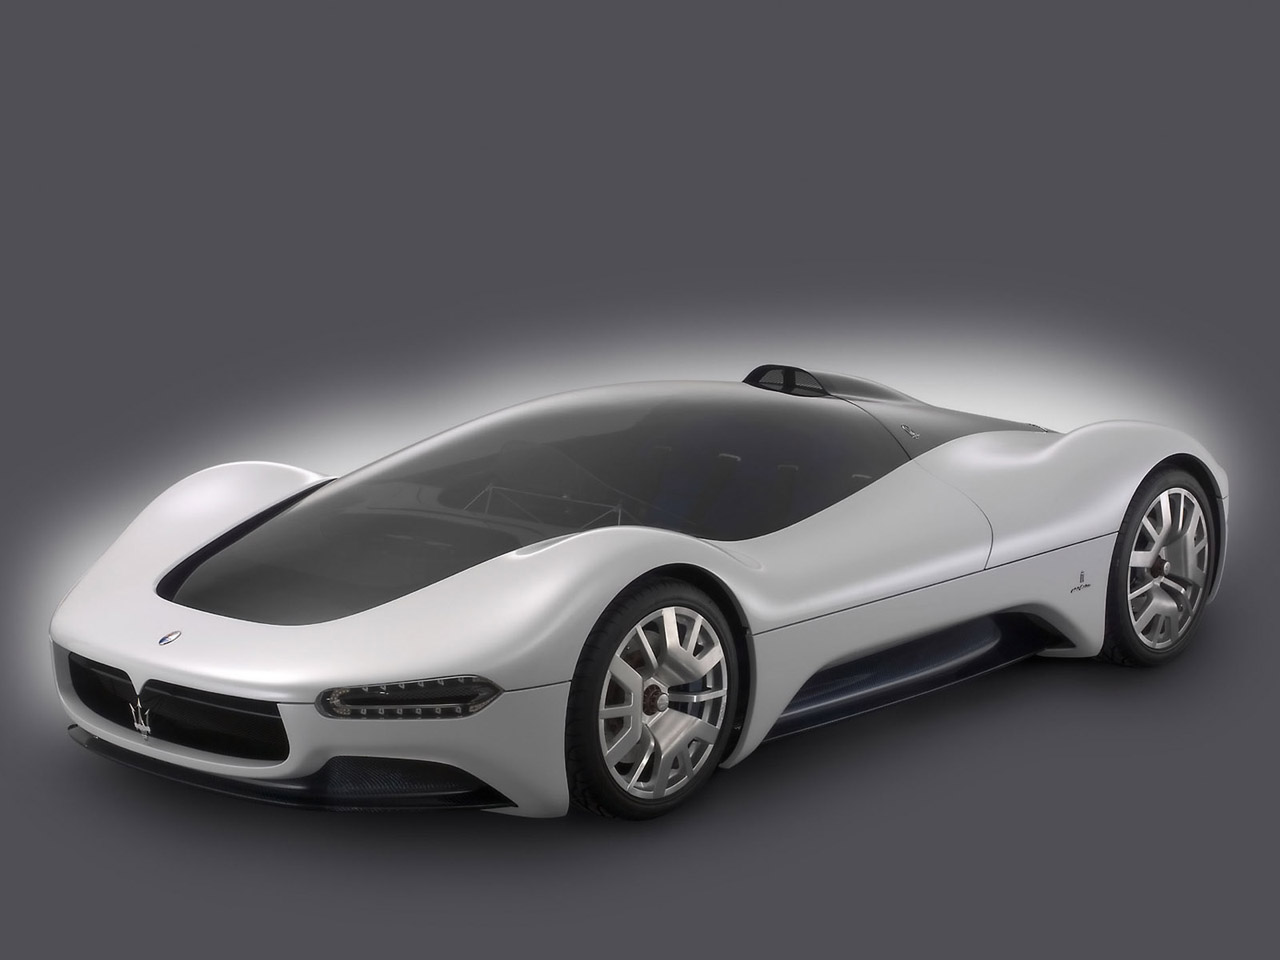 Latest Auto And Cars Latest Concept Cars Car Reviews